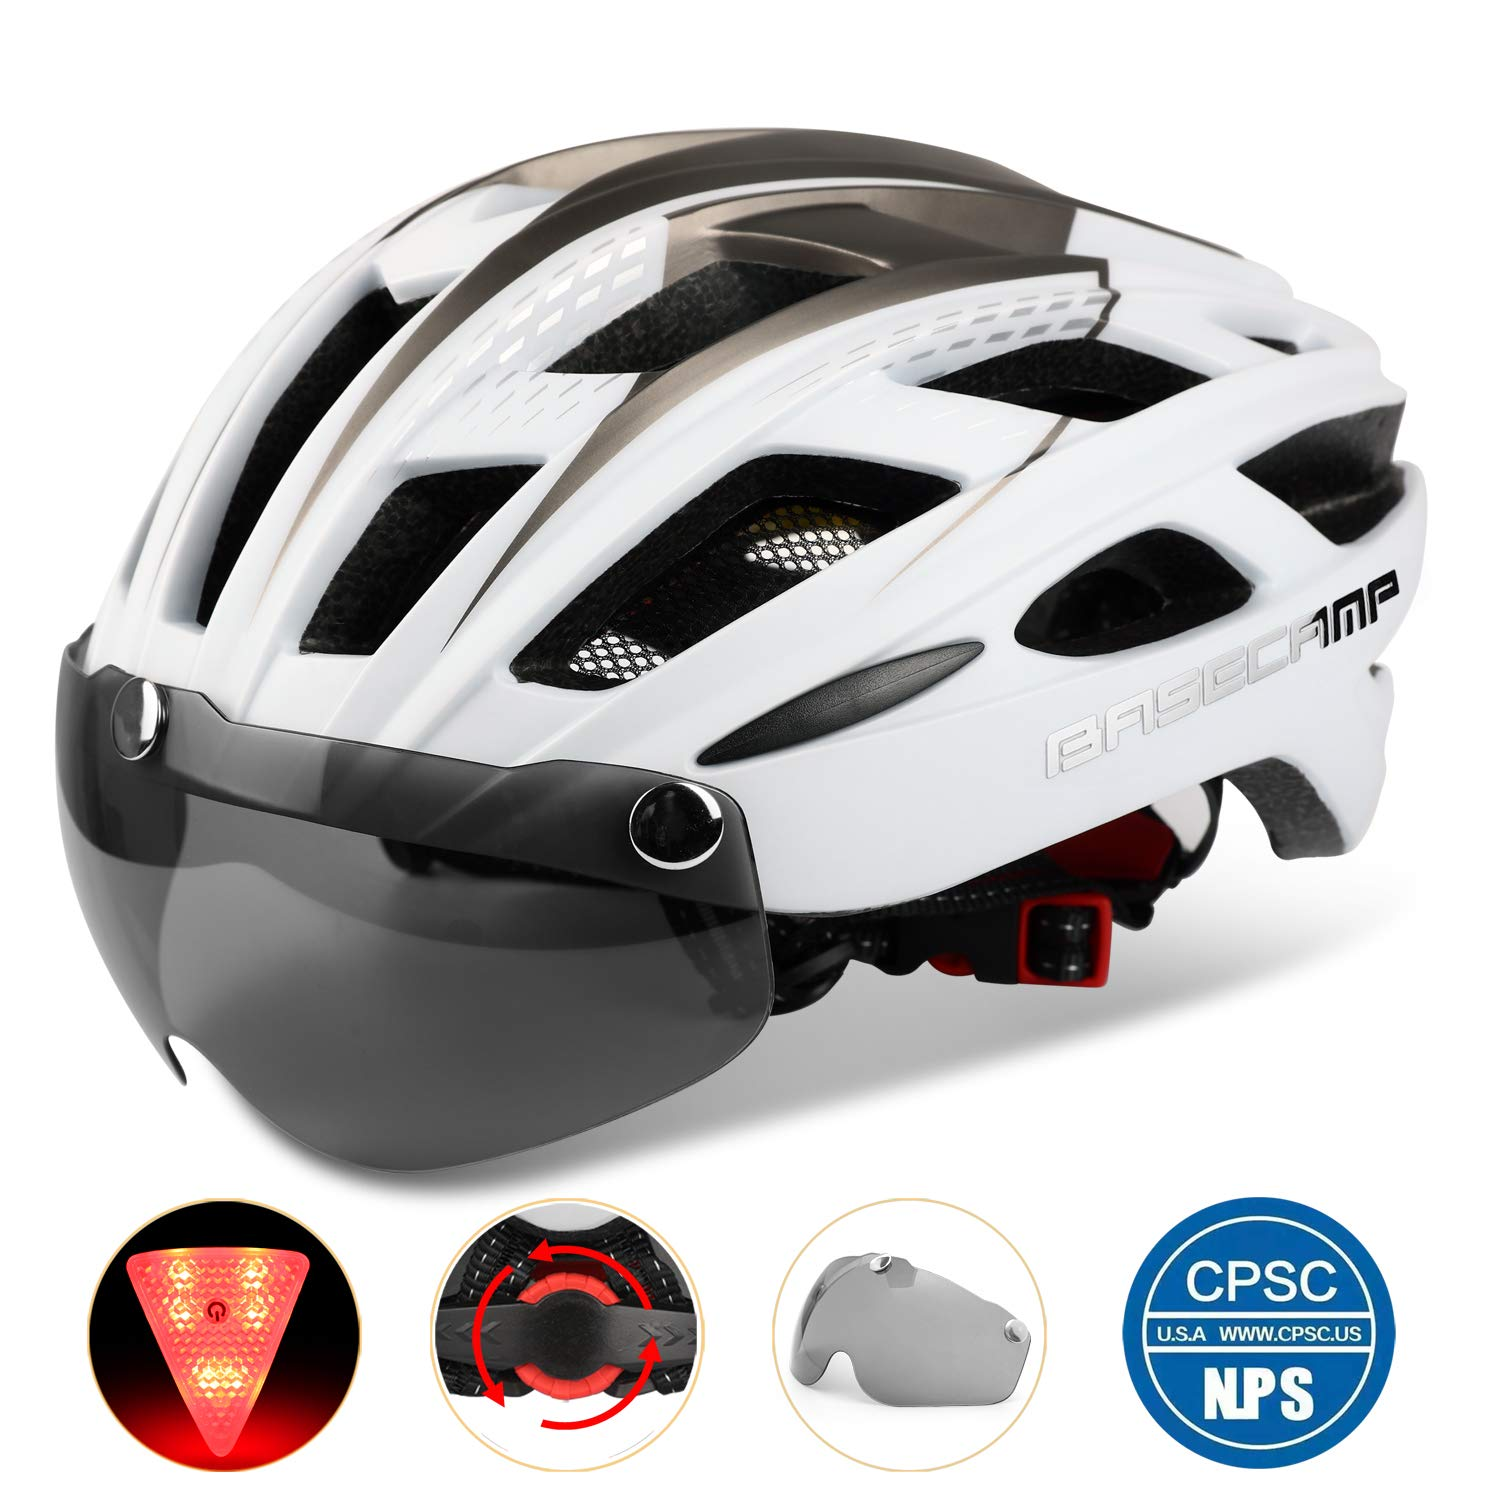 Basecamp Bike Helmet, Cycling Helmet CPSC Safety Standard Adjustable Bicycle/Climbing Helmet with Magnetic Visor&LED Safety Back Light for Adult Youth Men/Women Mountain&Road .